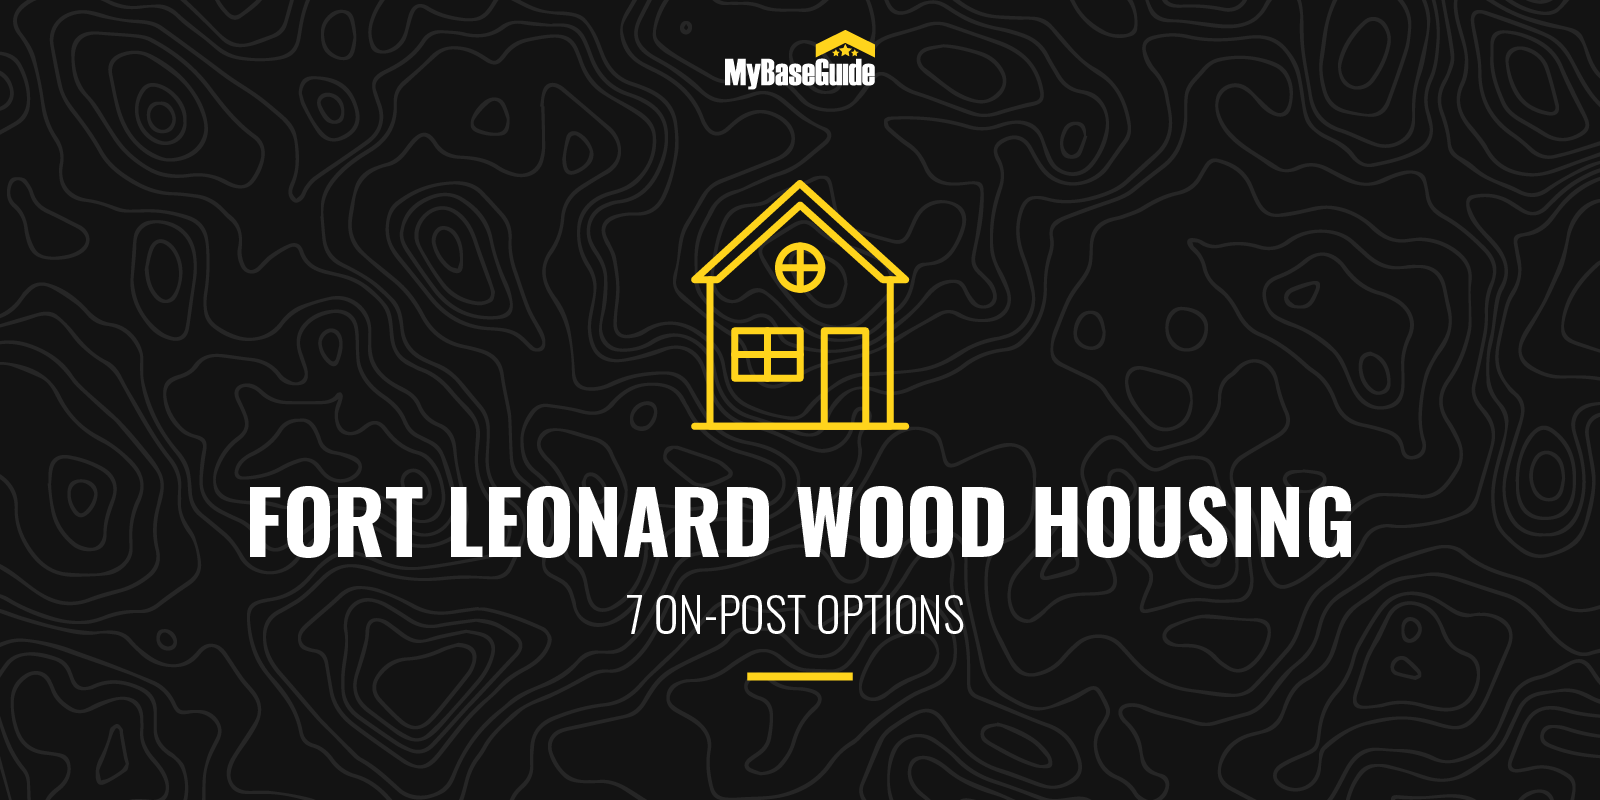 Fort Leonard Wood Housing: 7 On Post Options